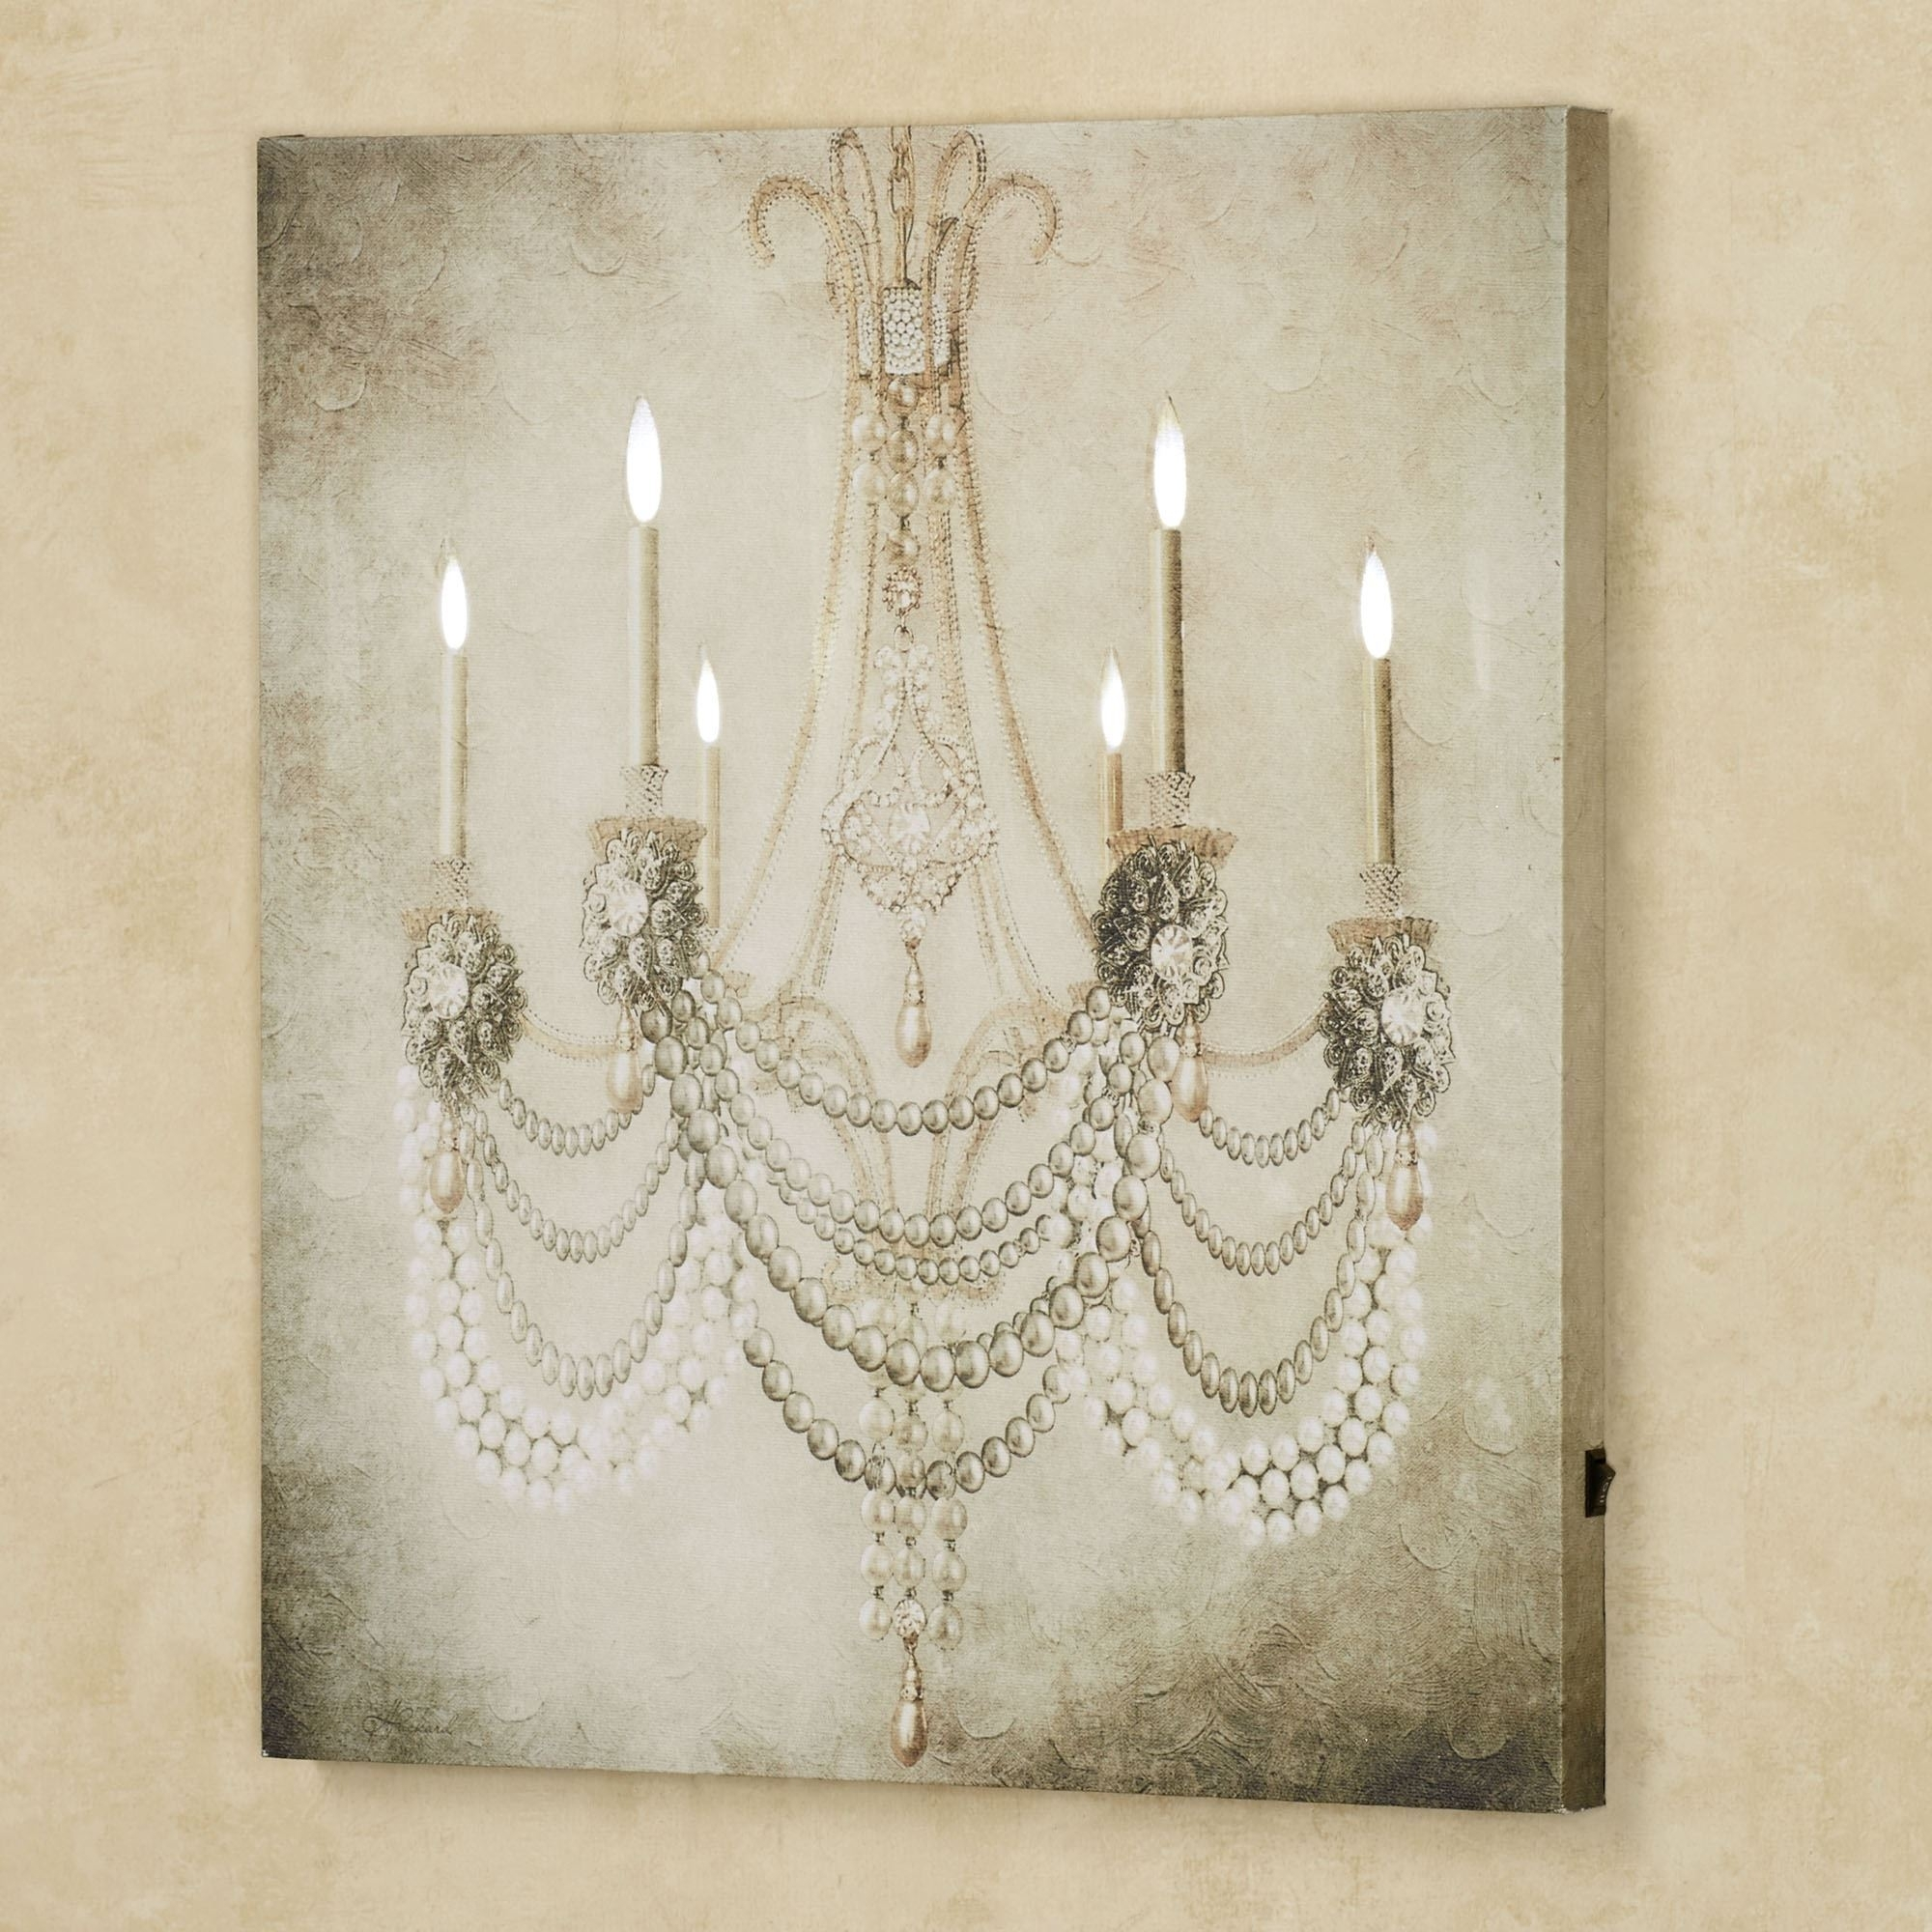 Vintage Chandelier Led Lighted Canvas Art Regarding Most Up To Date Chandelier Wall Art (View 19 of 20)